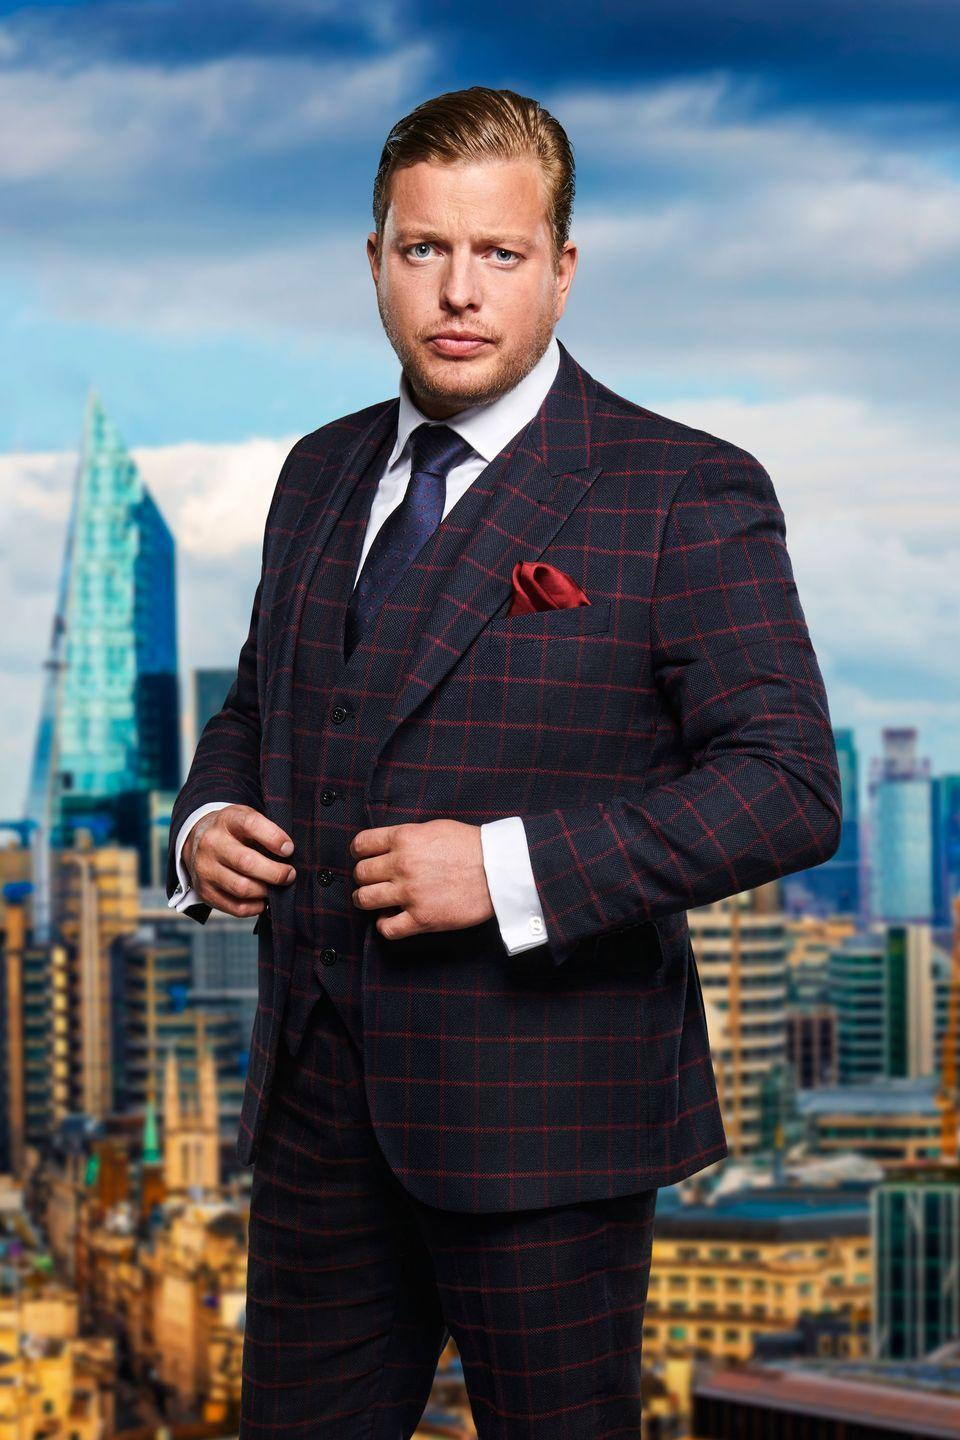 """<p>""""I don't plan - I just do everything on impulse. When I plan, I always get it wrong""""</p><p>Thomas, 28, from East London is the owner of a pillow company. He began his entrepreneurial career at 12 with a paper round and by the time he was 16 he was selling on the markets. He credits the success of his business to his """"sharp"""", """"street wise"""" character, and says that being a """"chancer"""" has worked in his favour.</p>"""